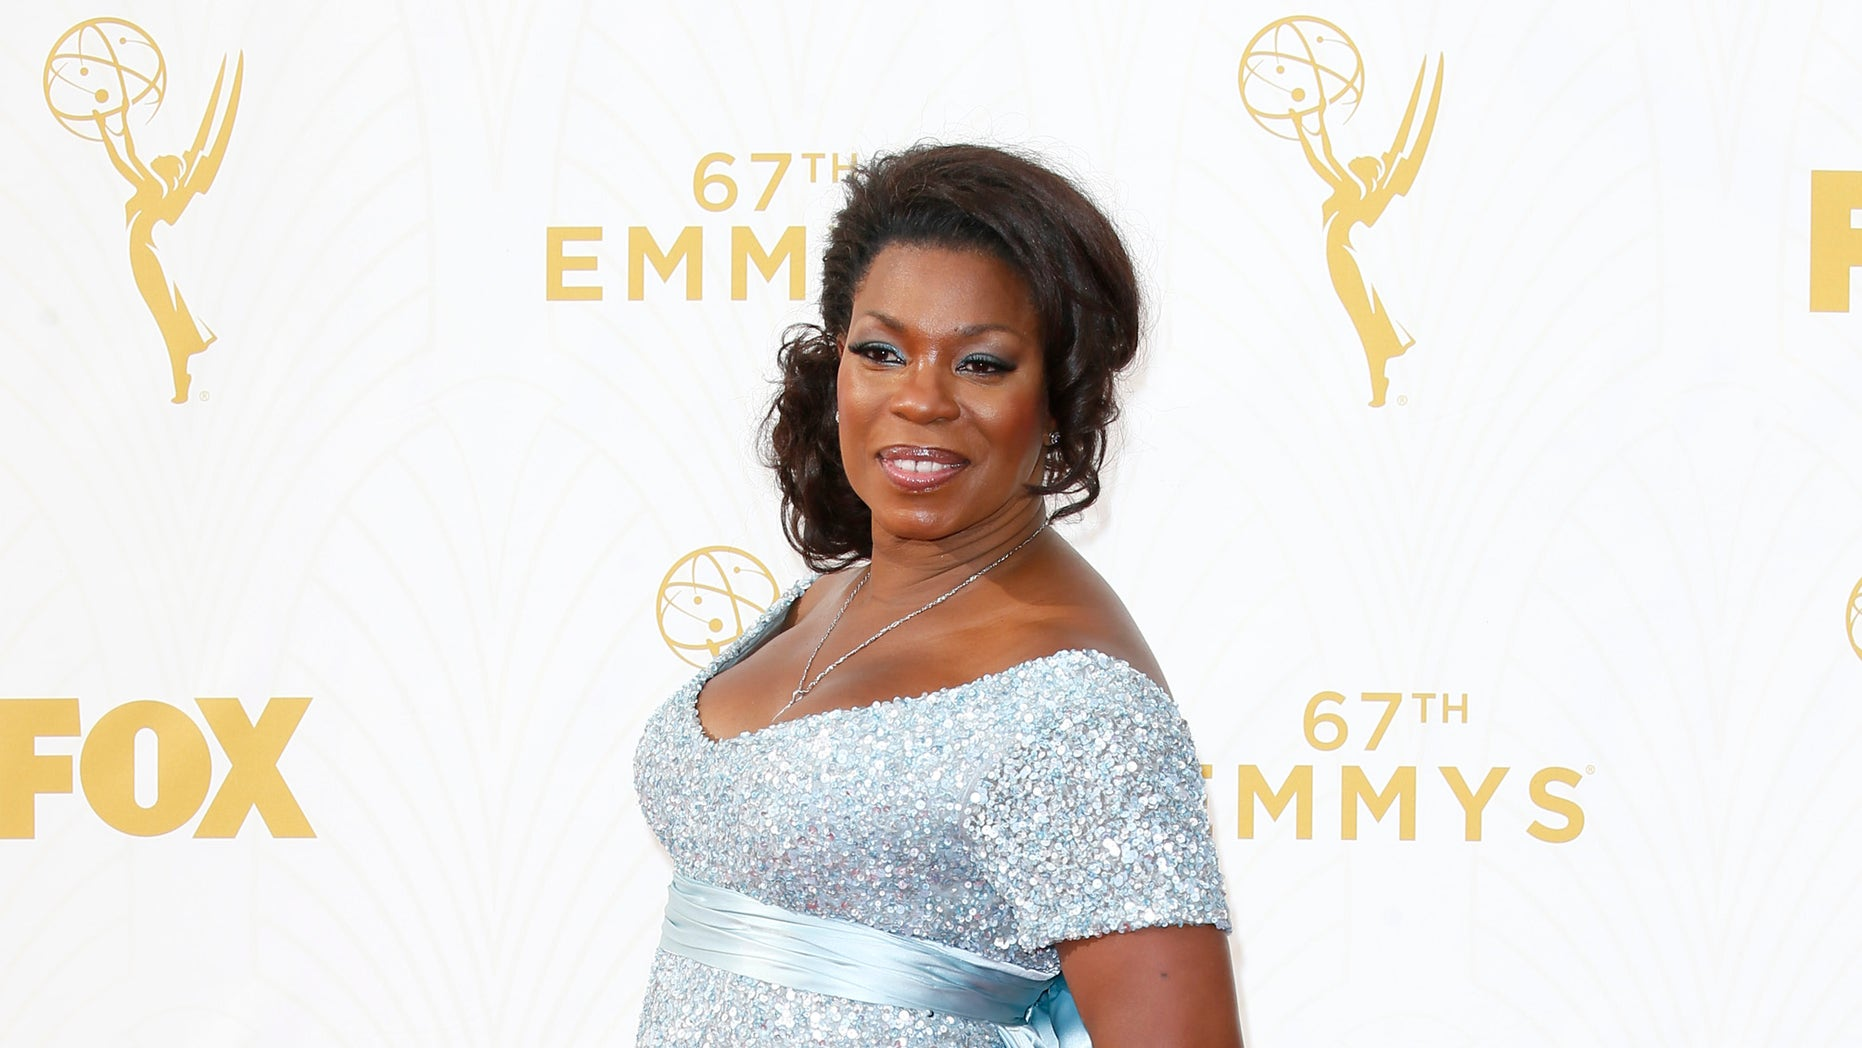 IMAGE DISTRIBUTED FOR THE TELEVISION ACADEMY - Lorraine Toussaint arrives at the 67th Primetime Emmy Awards on Sunday, Sept. 20, 2015, at the Microsoft Theater in Los Angeles. (Photo by Danny Moloshok/Invision for the Television Academy/AP Images)